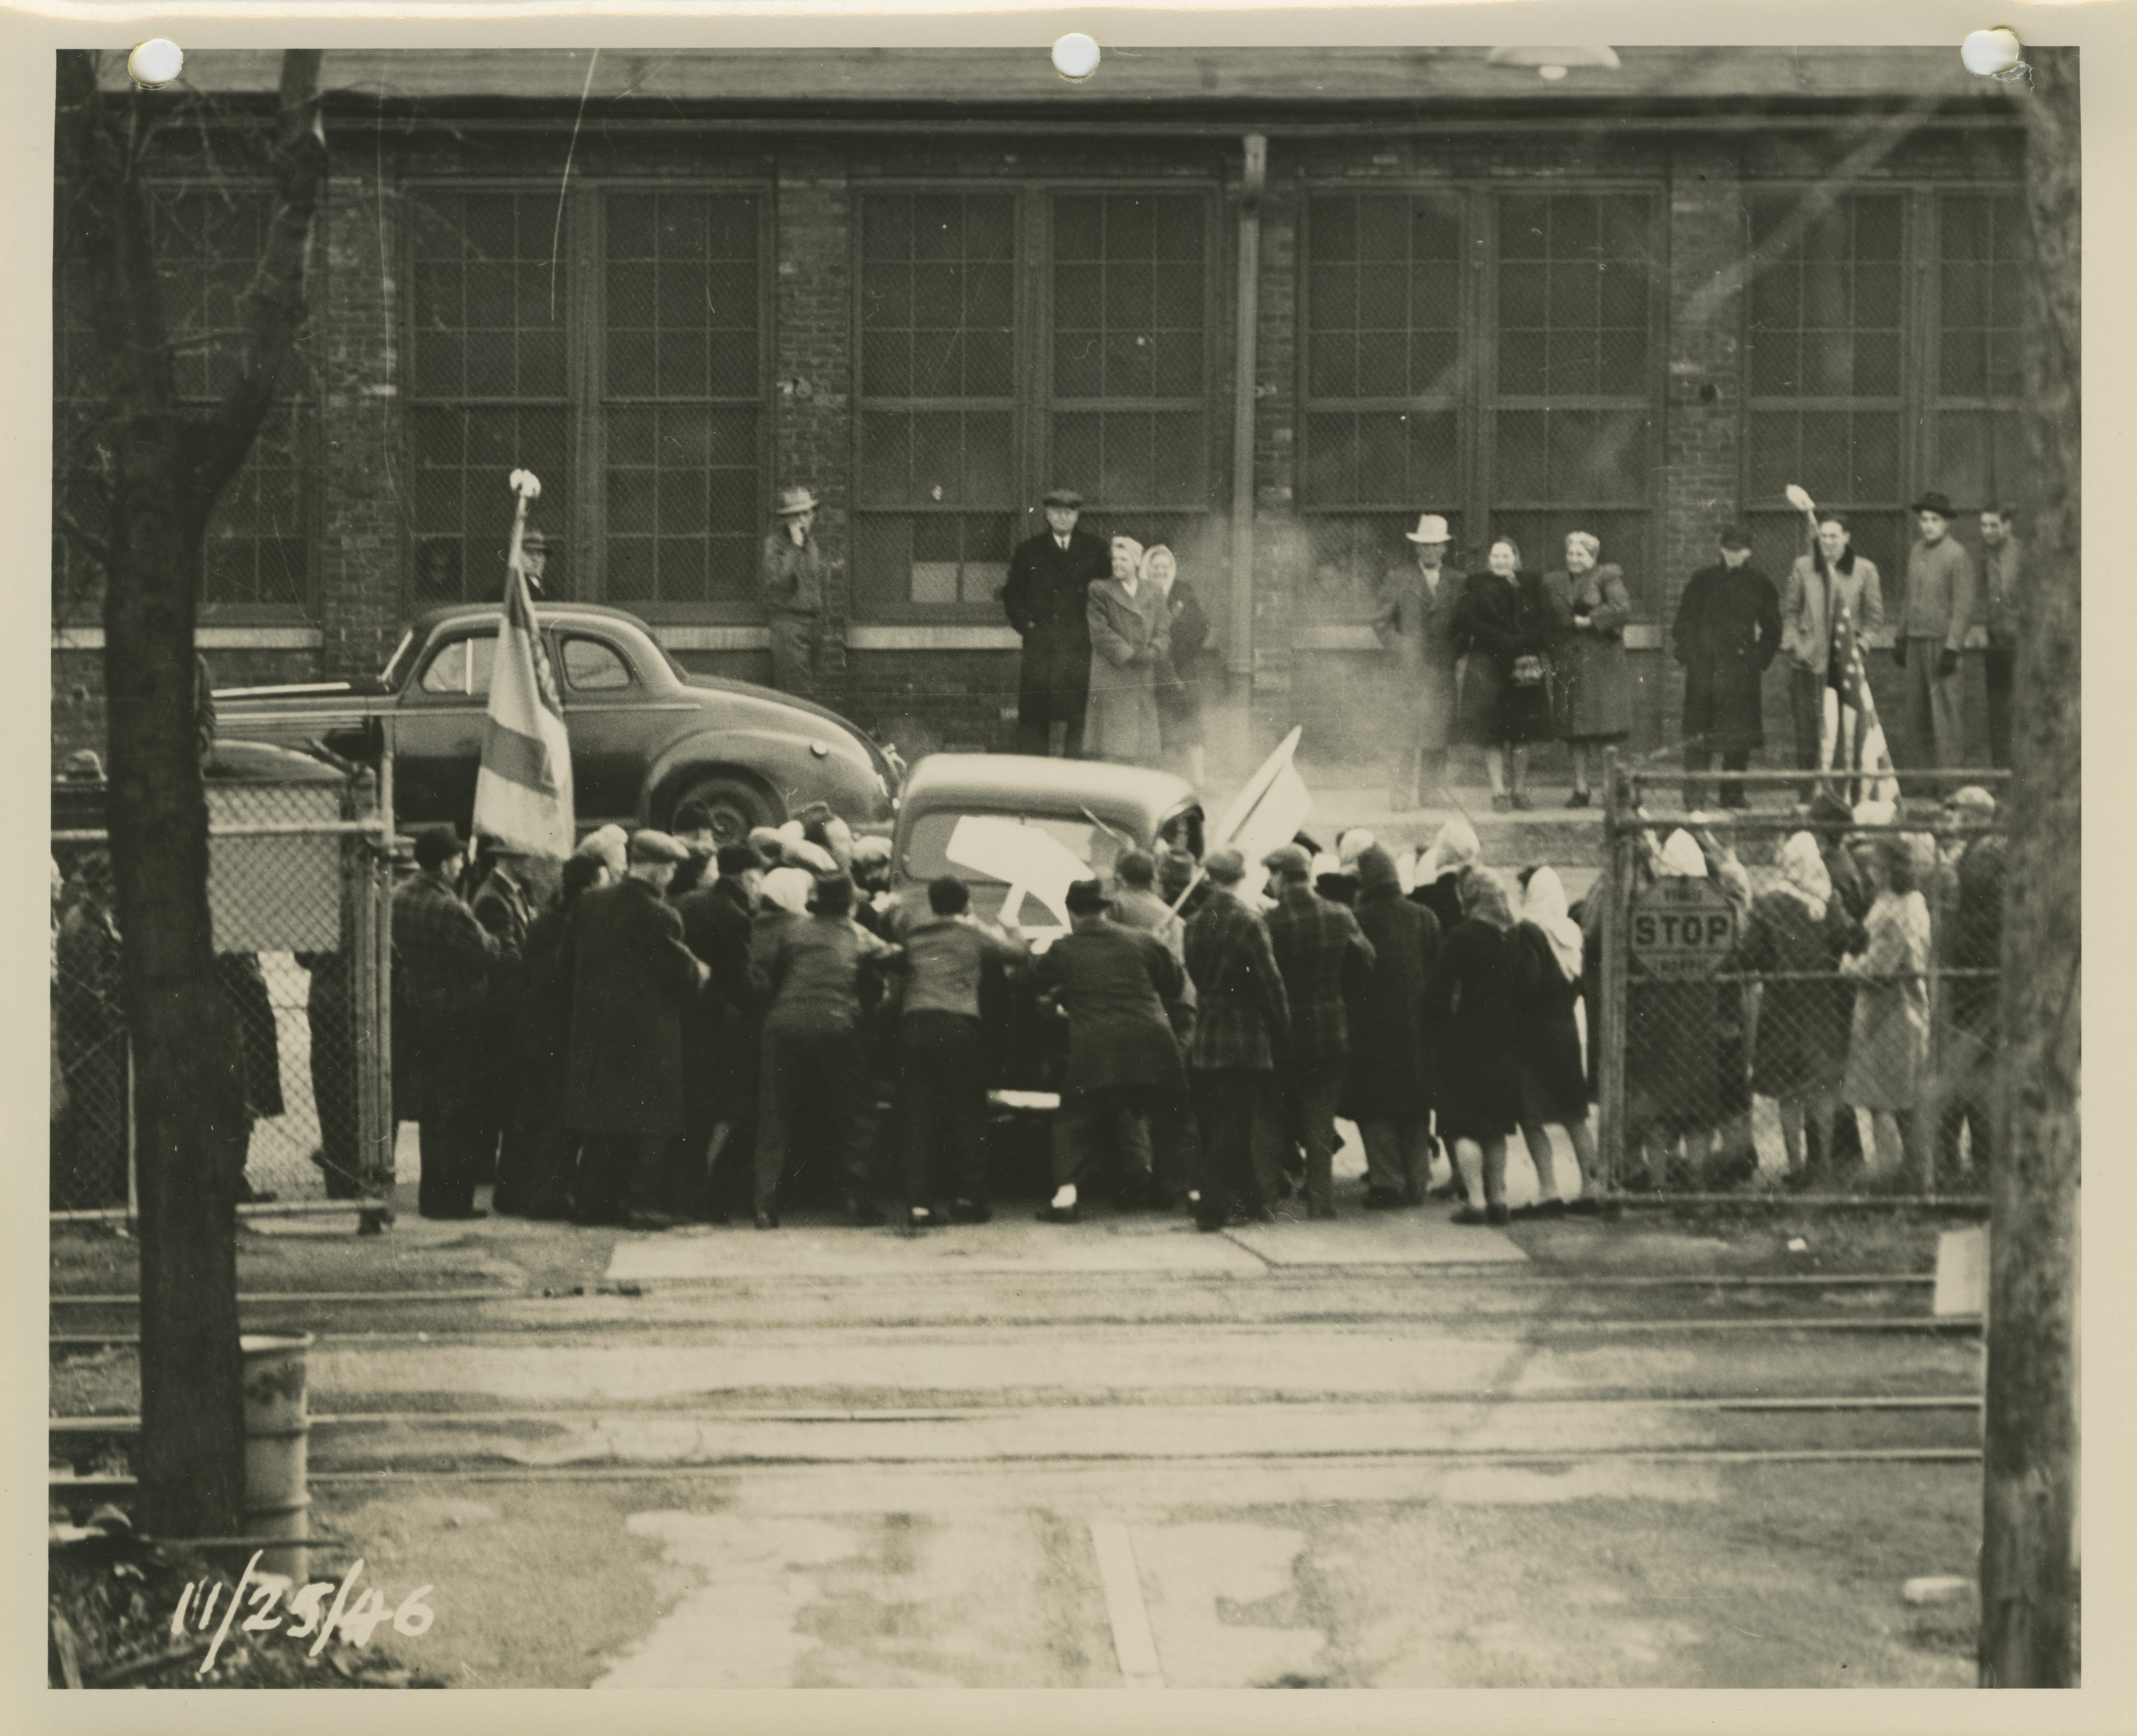 <table class=&quot;lightbox&quot;><tr><td colspan=2 class=&quot;lightbox-title&quot;>Strike at Allis-Chalmers</td></tr><tr><td colspan=2 class=&quot;lightbox-caption&quot;>Picketers try to prevent a car from entering the Allis-Chalmers factory, November 25, 1946.  United Auto Workers Local 248 waged a 13-month strike against the company from April 1946 to May 1947.  This picture was in company testimony before the U.S. House of Representatives Committee on Education and Labor, February 24, 1947, alleging the union was dominated by Communists. </td></tr><tr><td colspan=2 class=&quot;lightbox-spacer&quot;></td></tr><tr class=&quot;lightbox-detail&quot;><td class=&quot;cell-title&quot;>Source: </td><td class=&quot;cell-value&quot;>From the Harold Story Papers Collection of the Wisconsin Historical Society. Reprinted with permission.</td></tr><tr class=&quot;filler-row&quot;><td colspan=2>&nbsp;</td></tr></table>